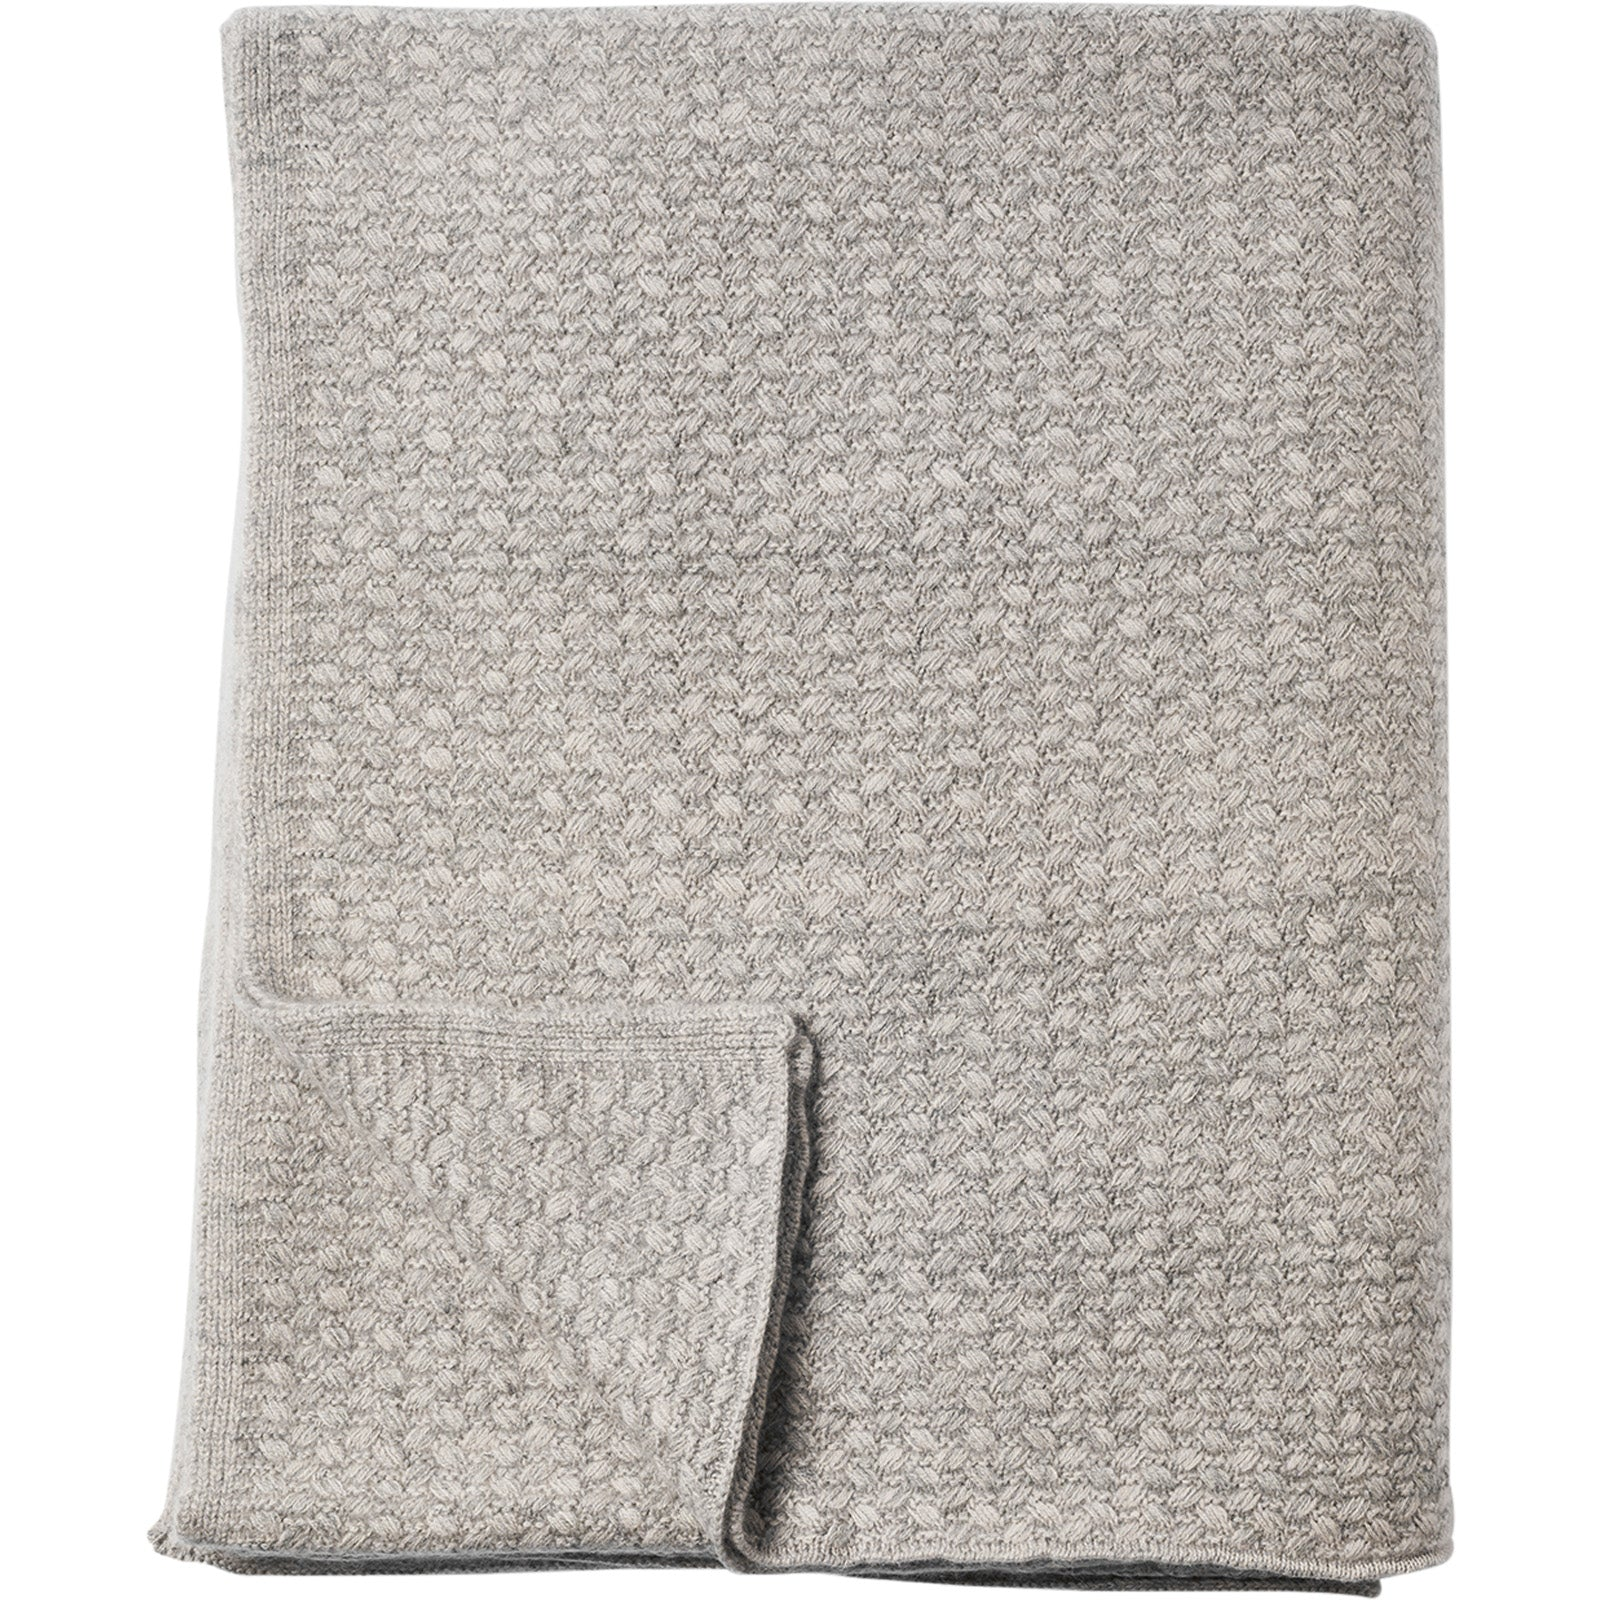 Safira Throw Grey